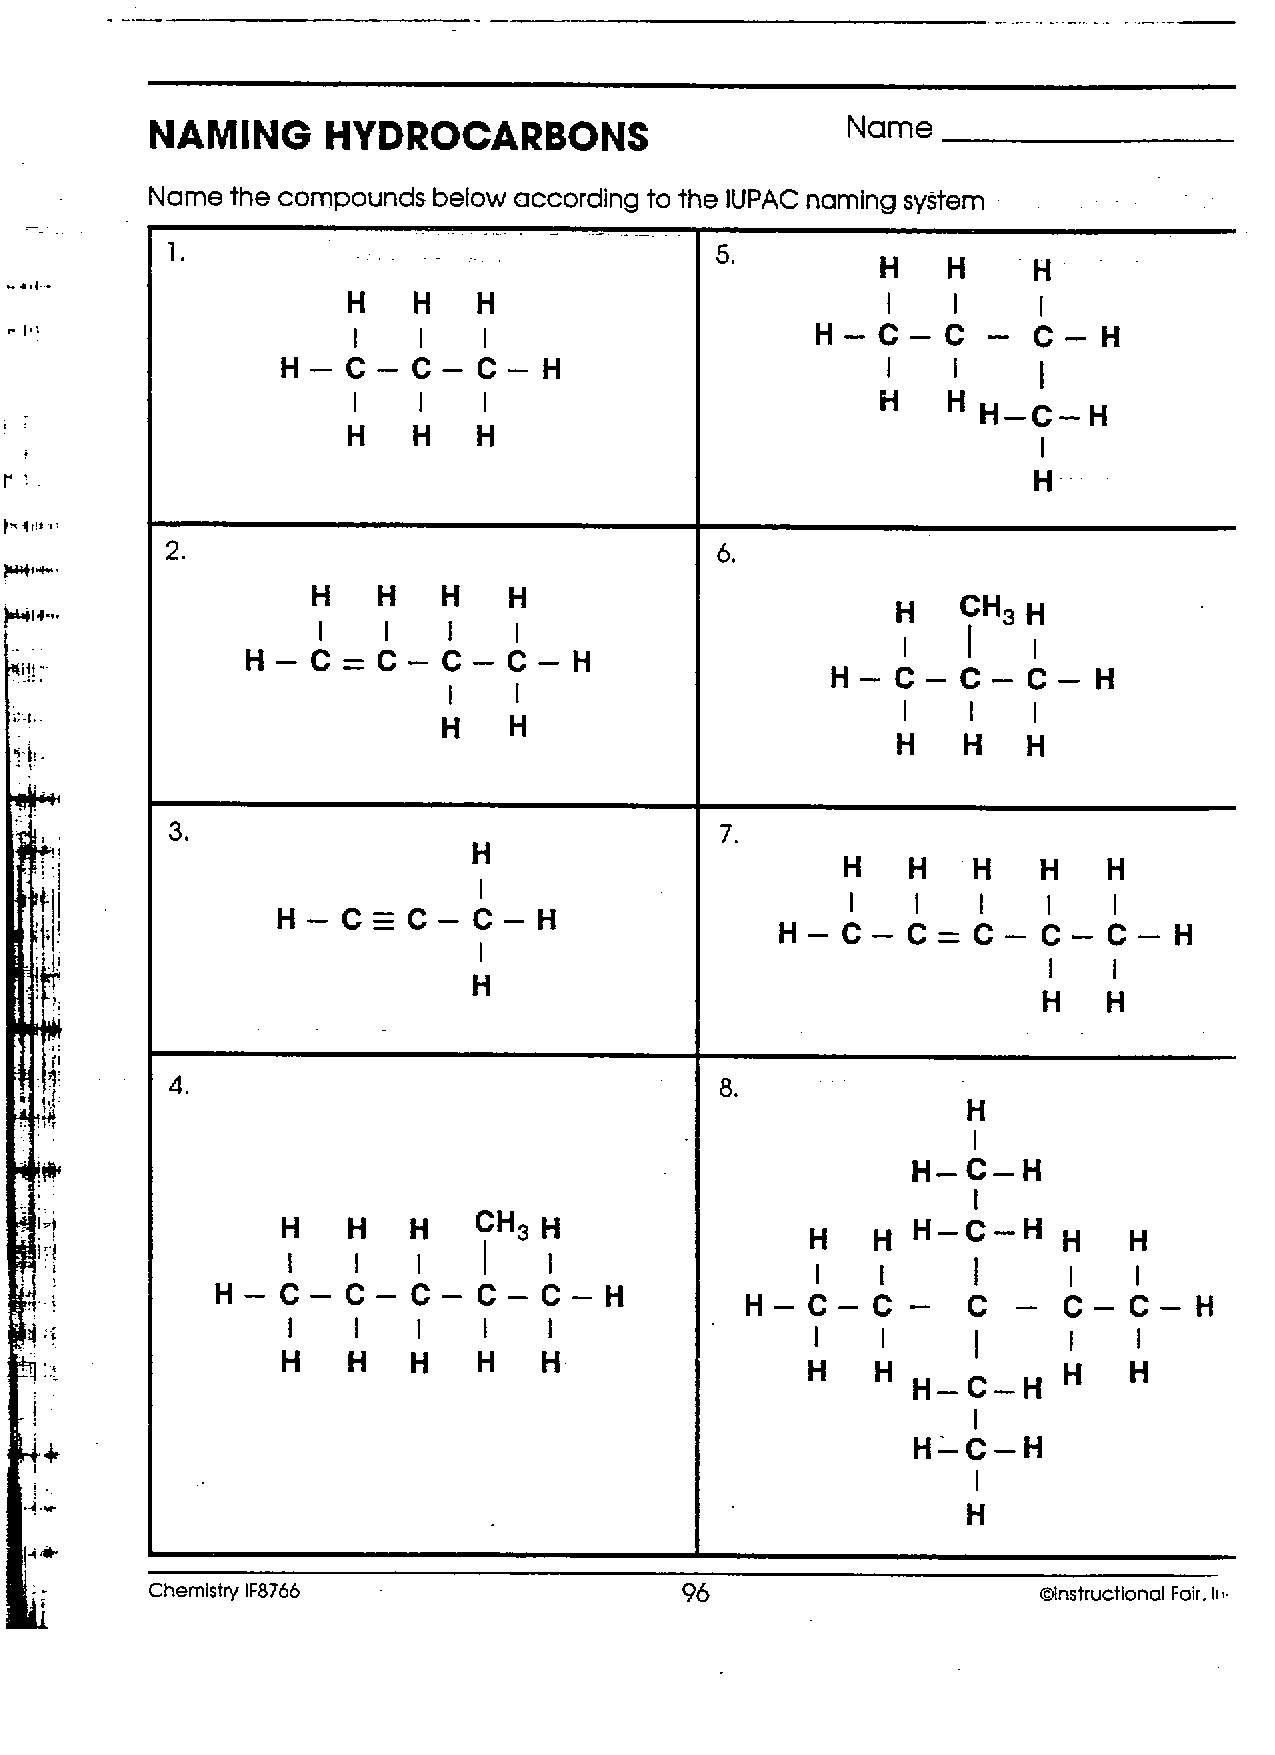 worksheet Organic Chemistry Nomenclature Worksheet organic chemistry nomenclature worksheet week news softwares includes information about naming ethers may be